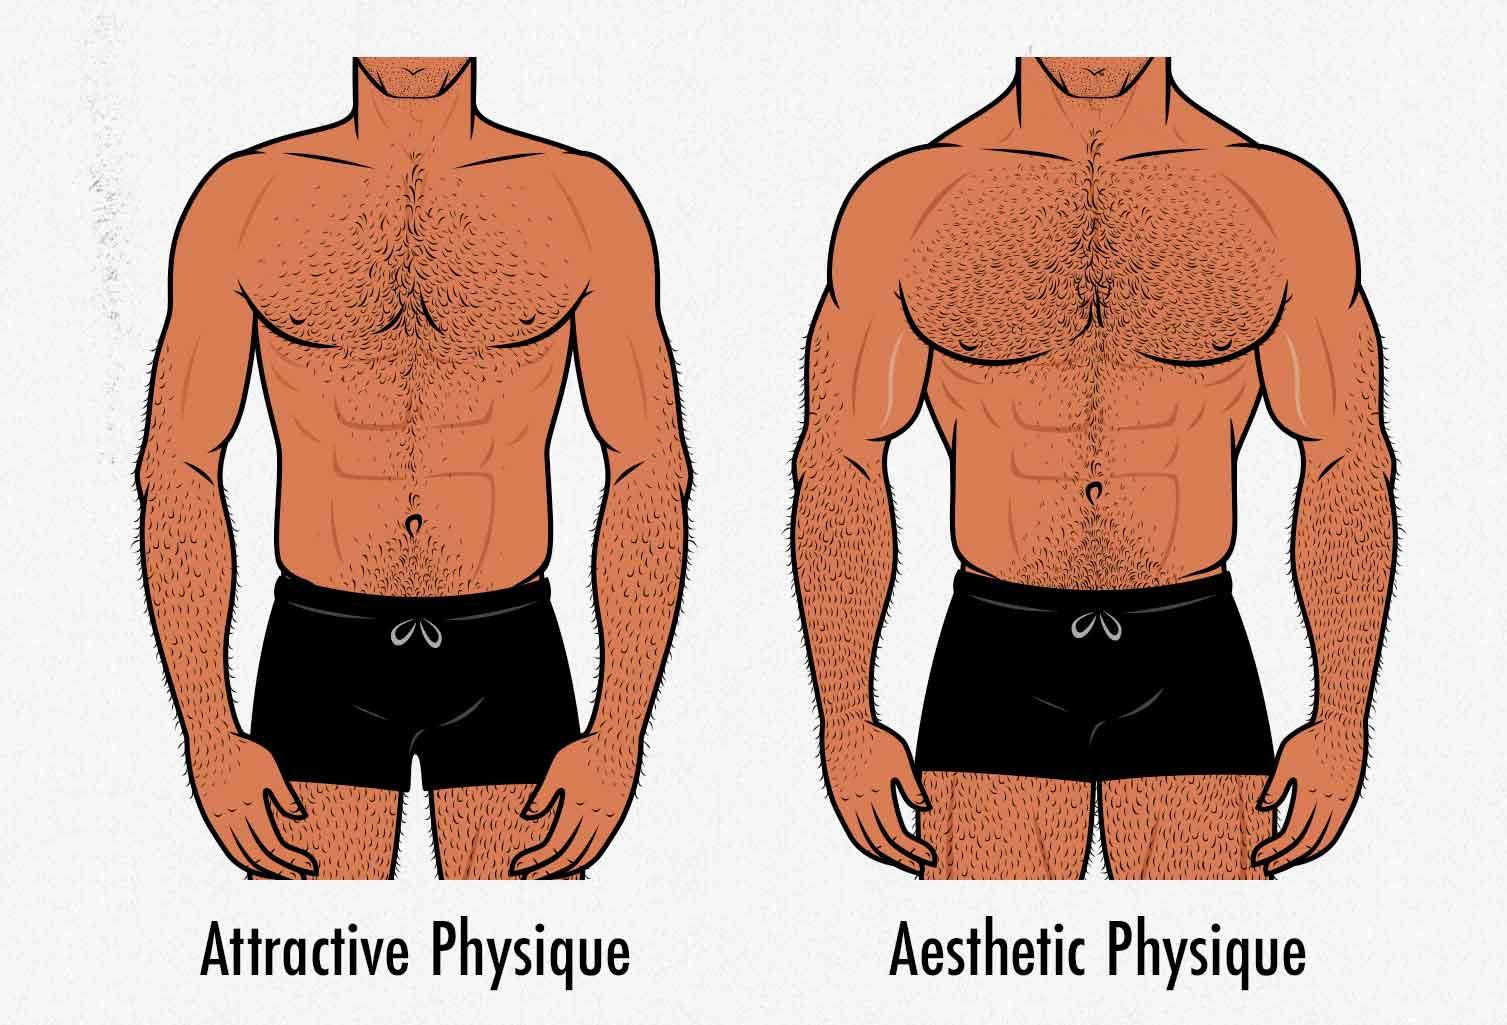 Illustration showing the differences between a male body that's attractive to women versus a body that looks ideal to men.